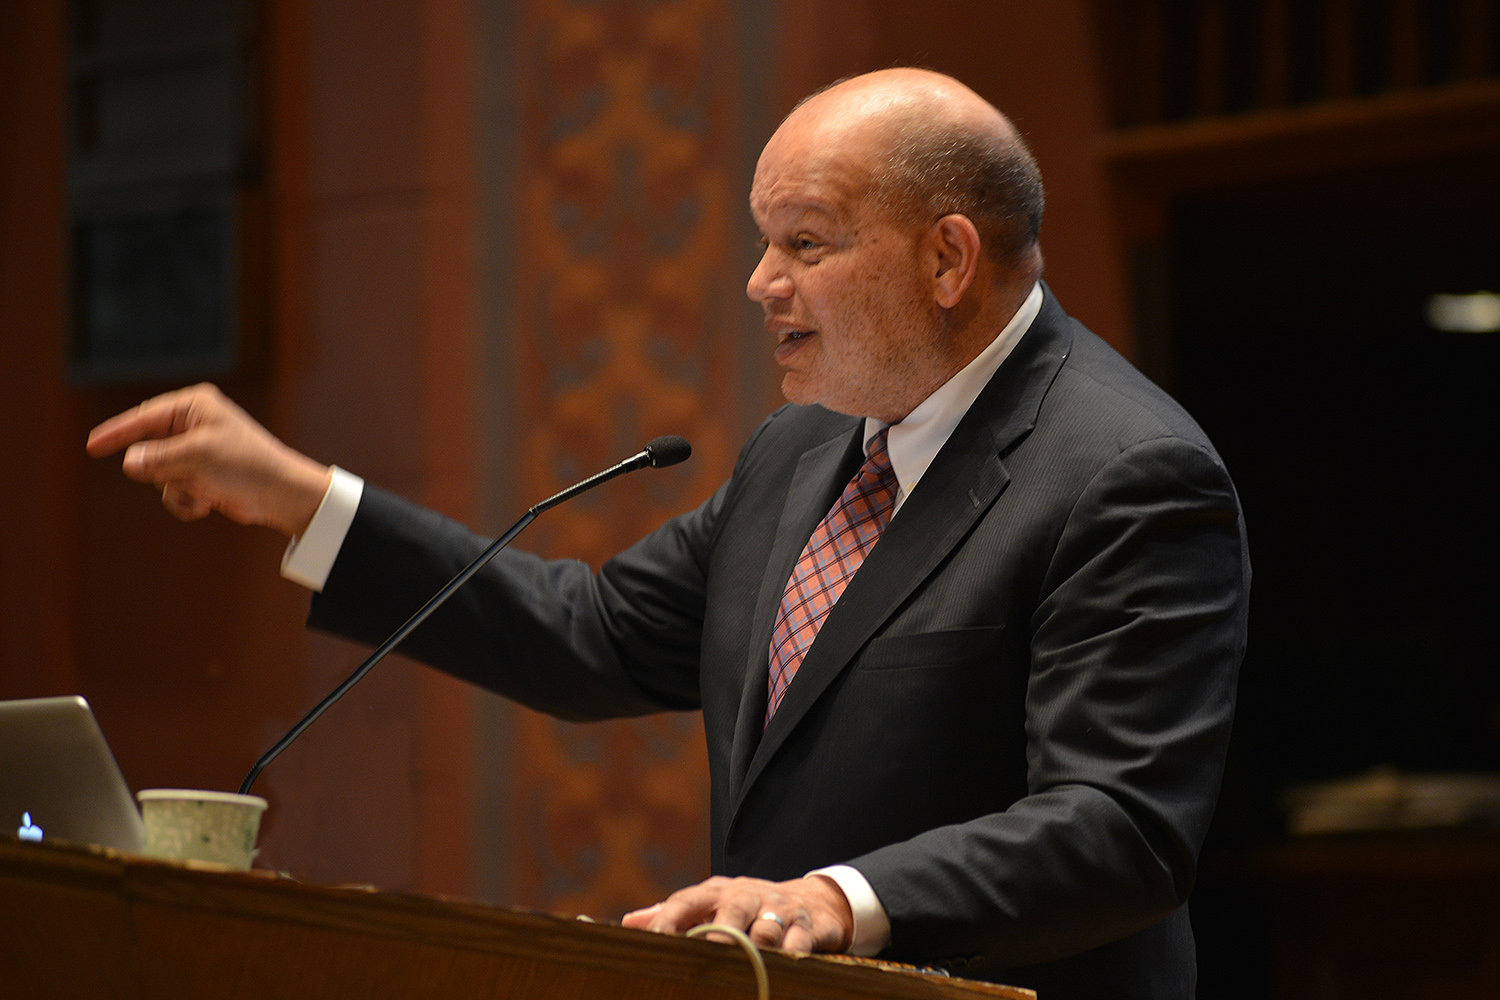 """Theodore Shaw '76, Hon. '14 spoke on """"Freedom is a Constant Struggle"""" during Wesleyan's annual Dr. Martin Luther King Jr. commemoration Feb. 3 in Memorial Chapel."""